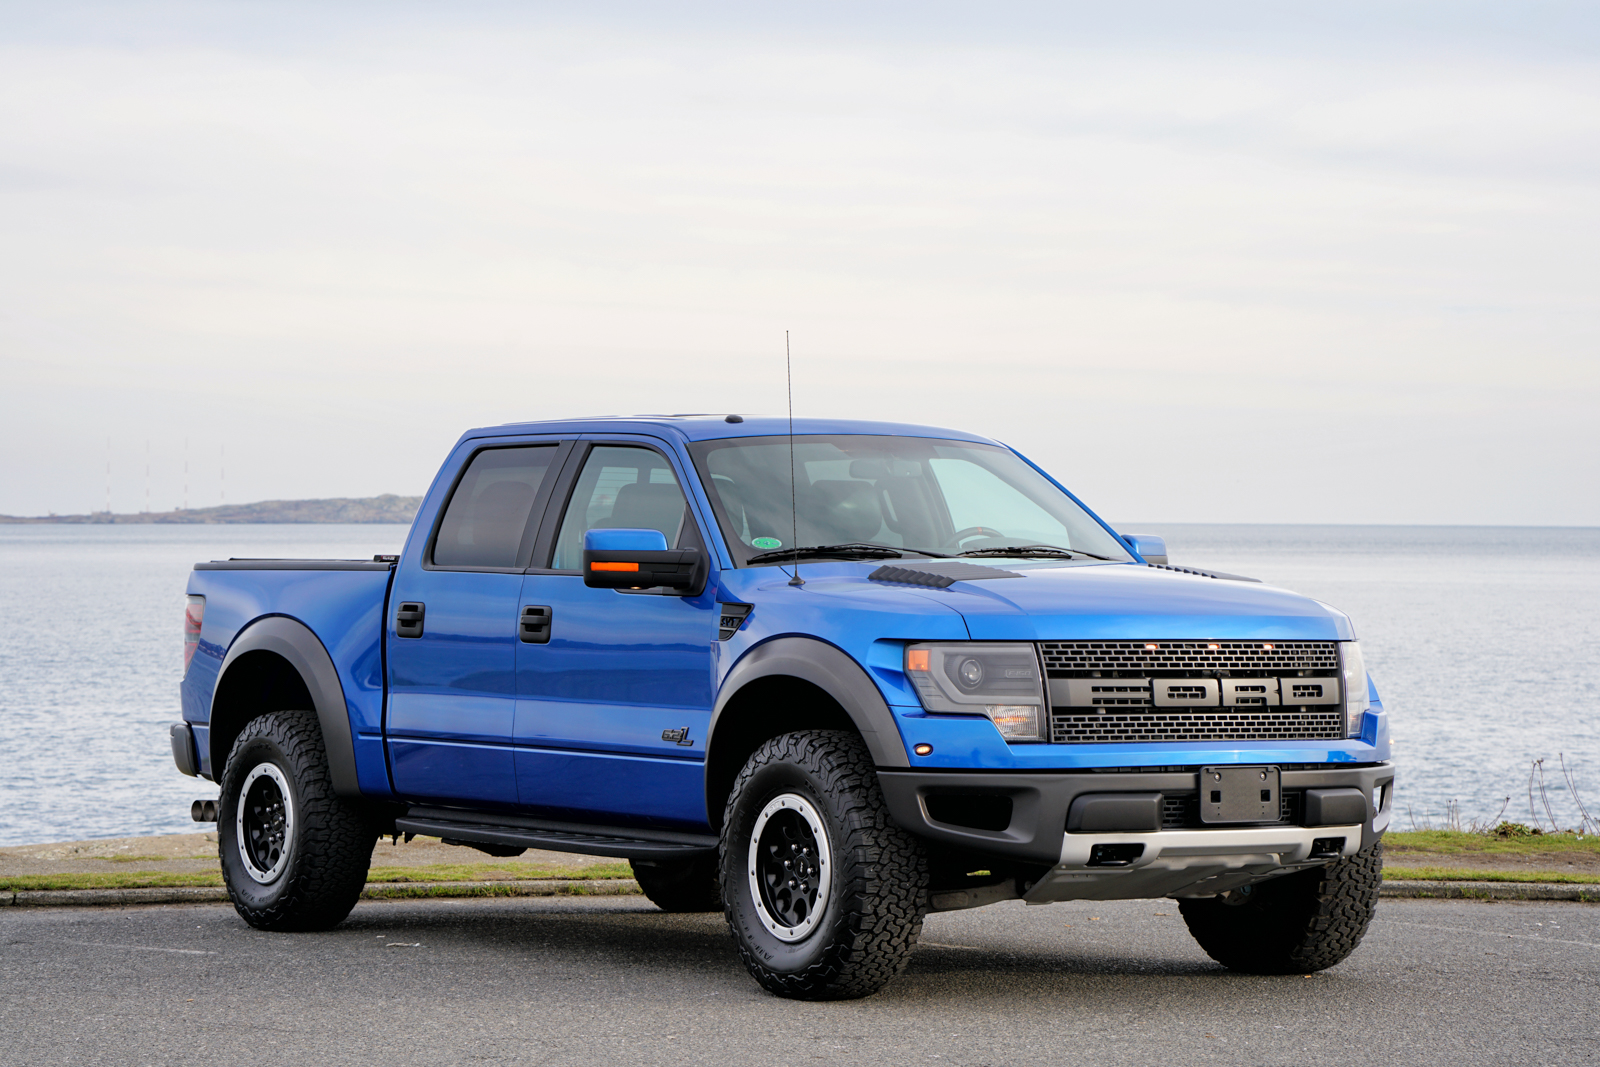 2013 ford f 150 svt raptor for sale silver arrow cars ltd. Black Bedroom Furniture Sets. Home Design Ideas